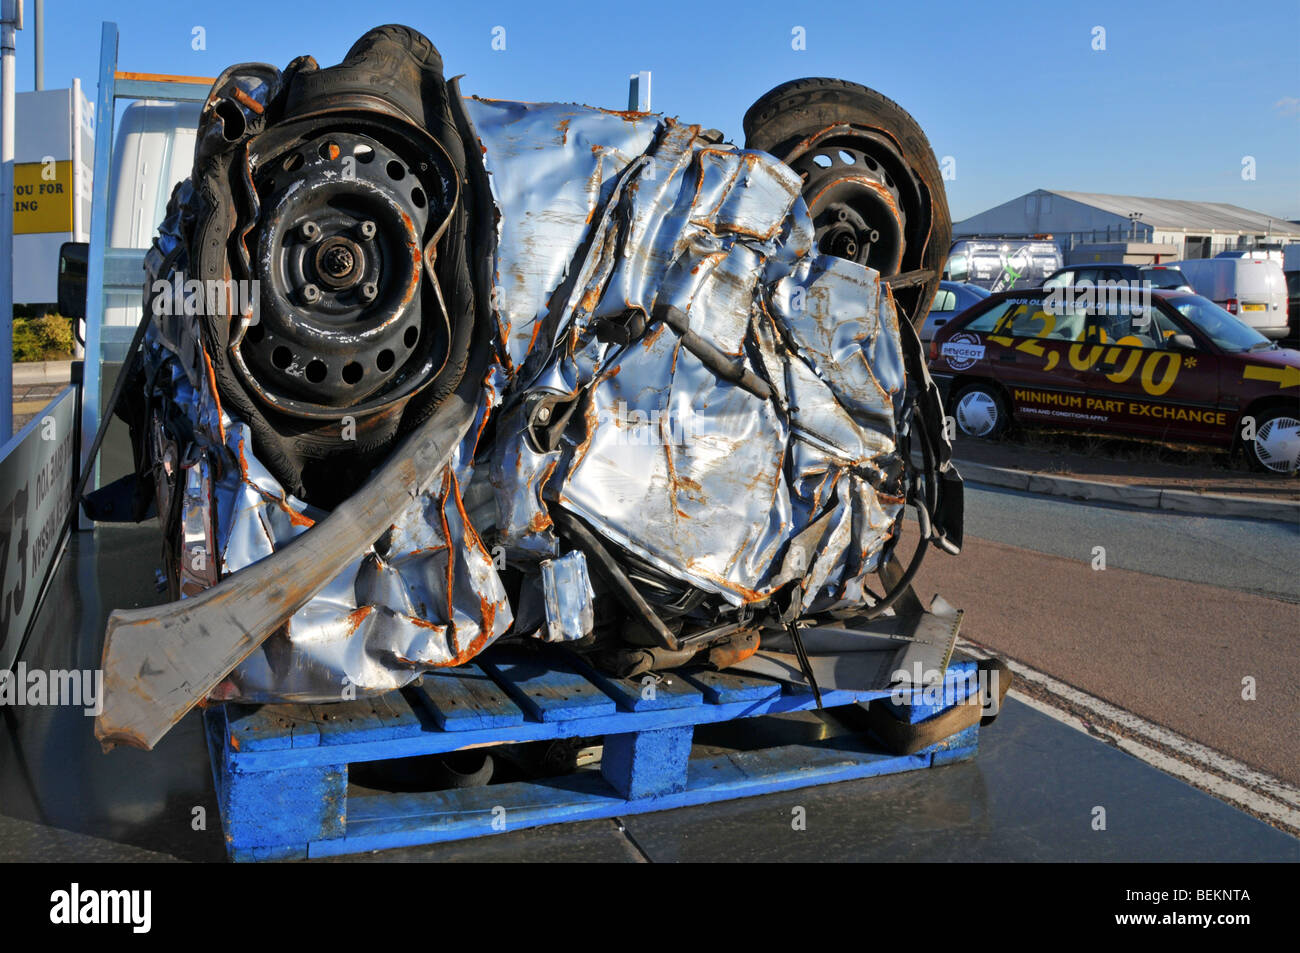 Scrapped motor car crushed into a cube for recycling in car ...